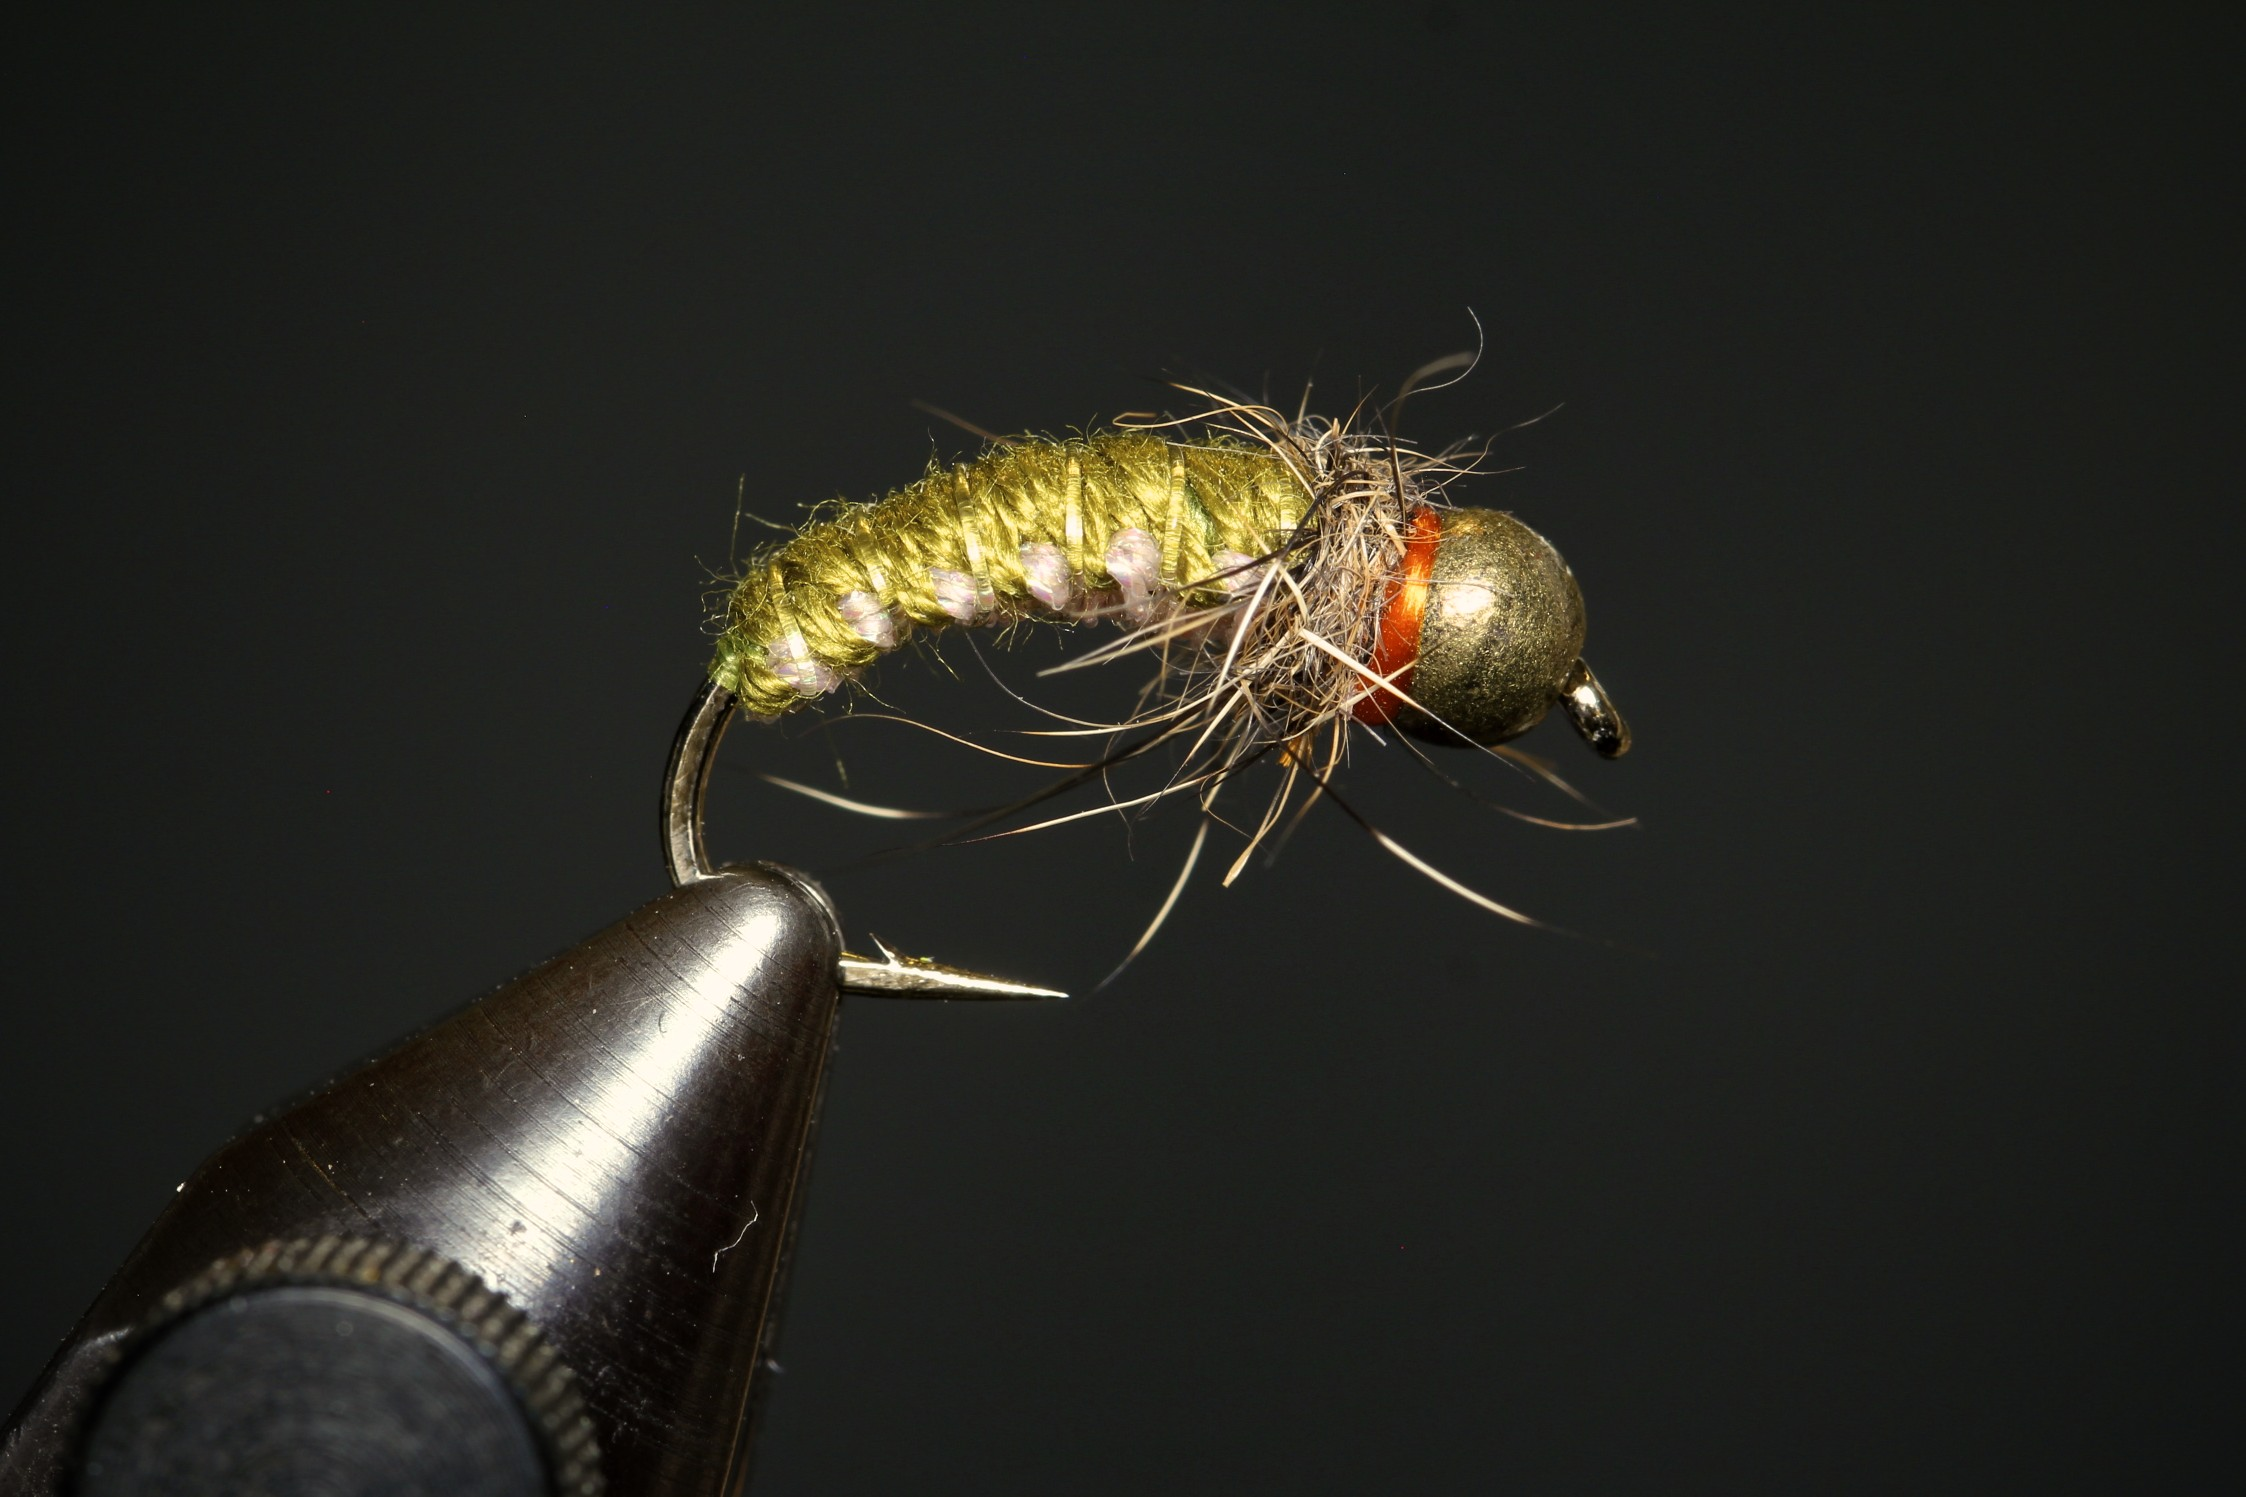 Euro Nymphing Flies | Fly Tying 123 - Fly Tying Instructions and Videos